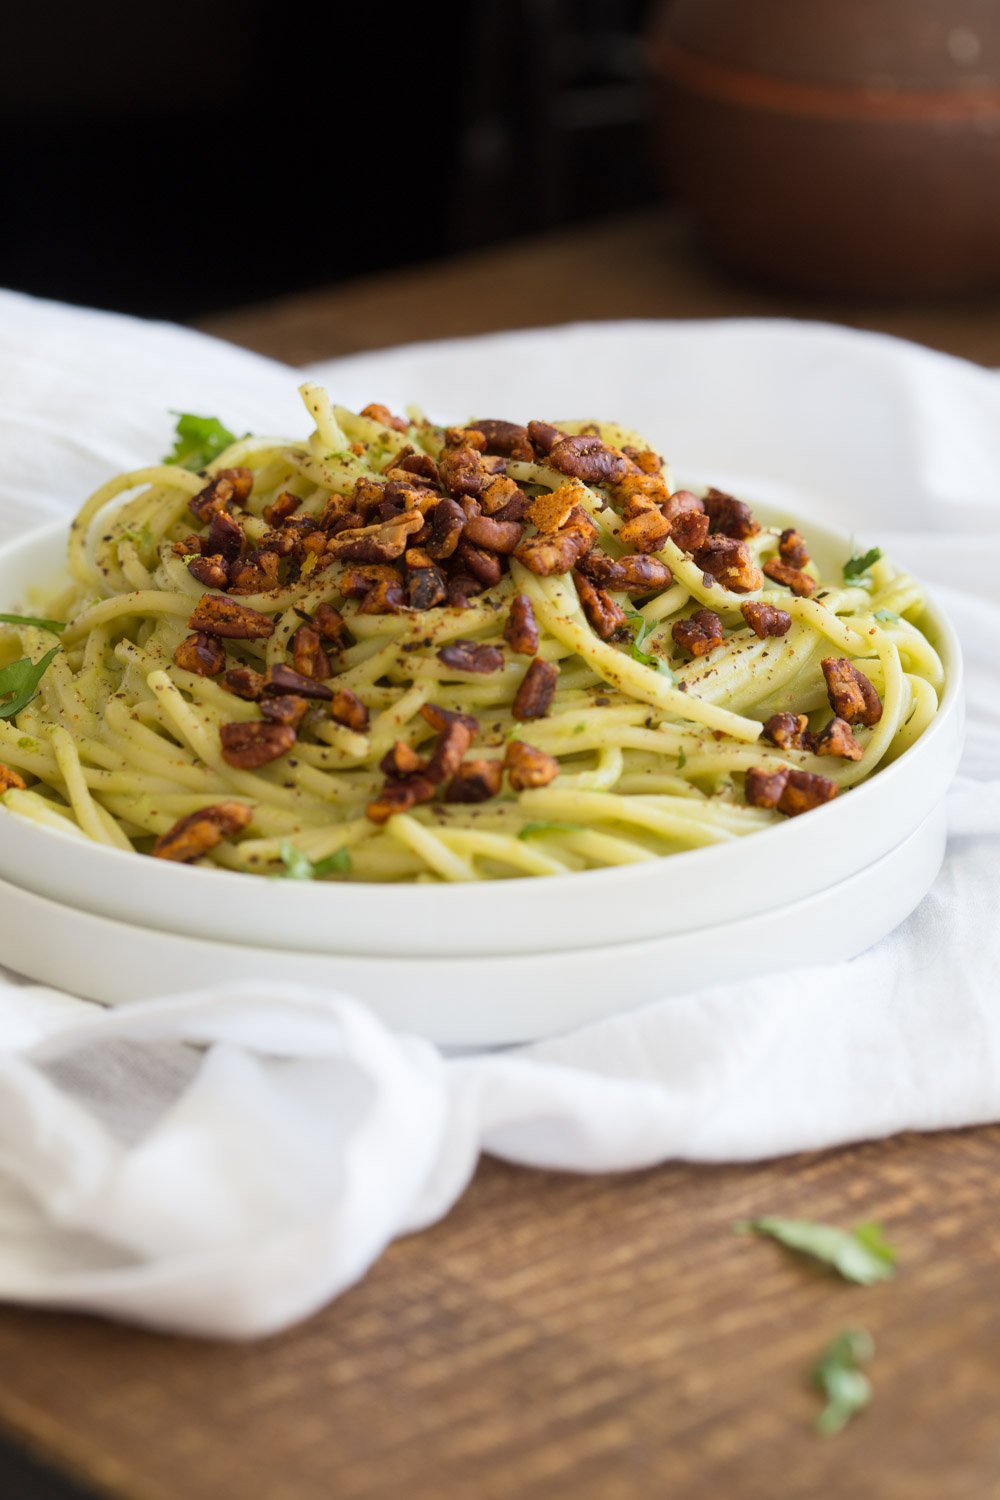 Avocado Pasta with Smoky Pecans served on a white plate